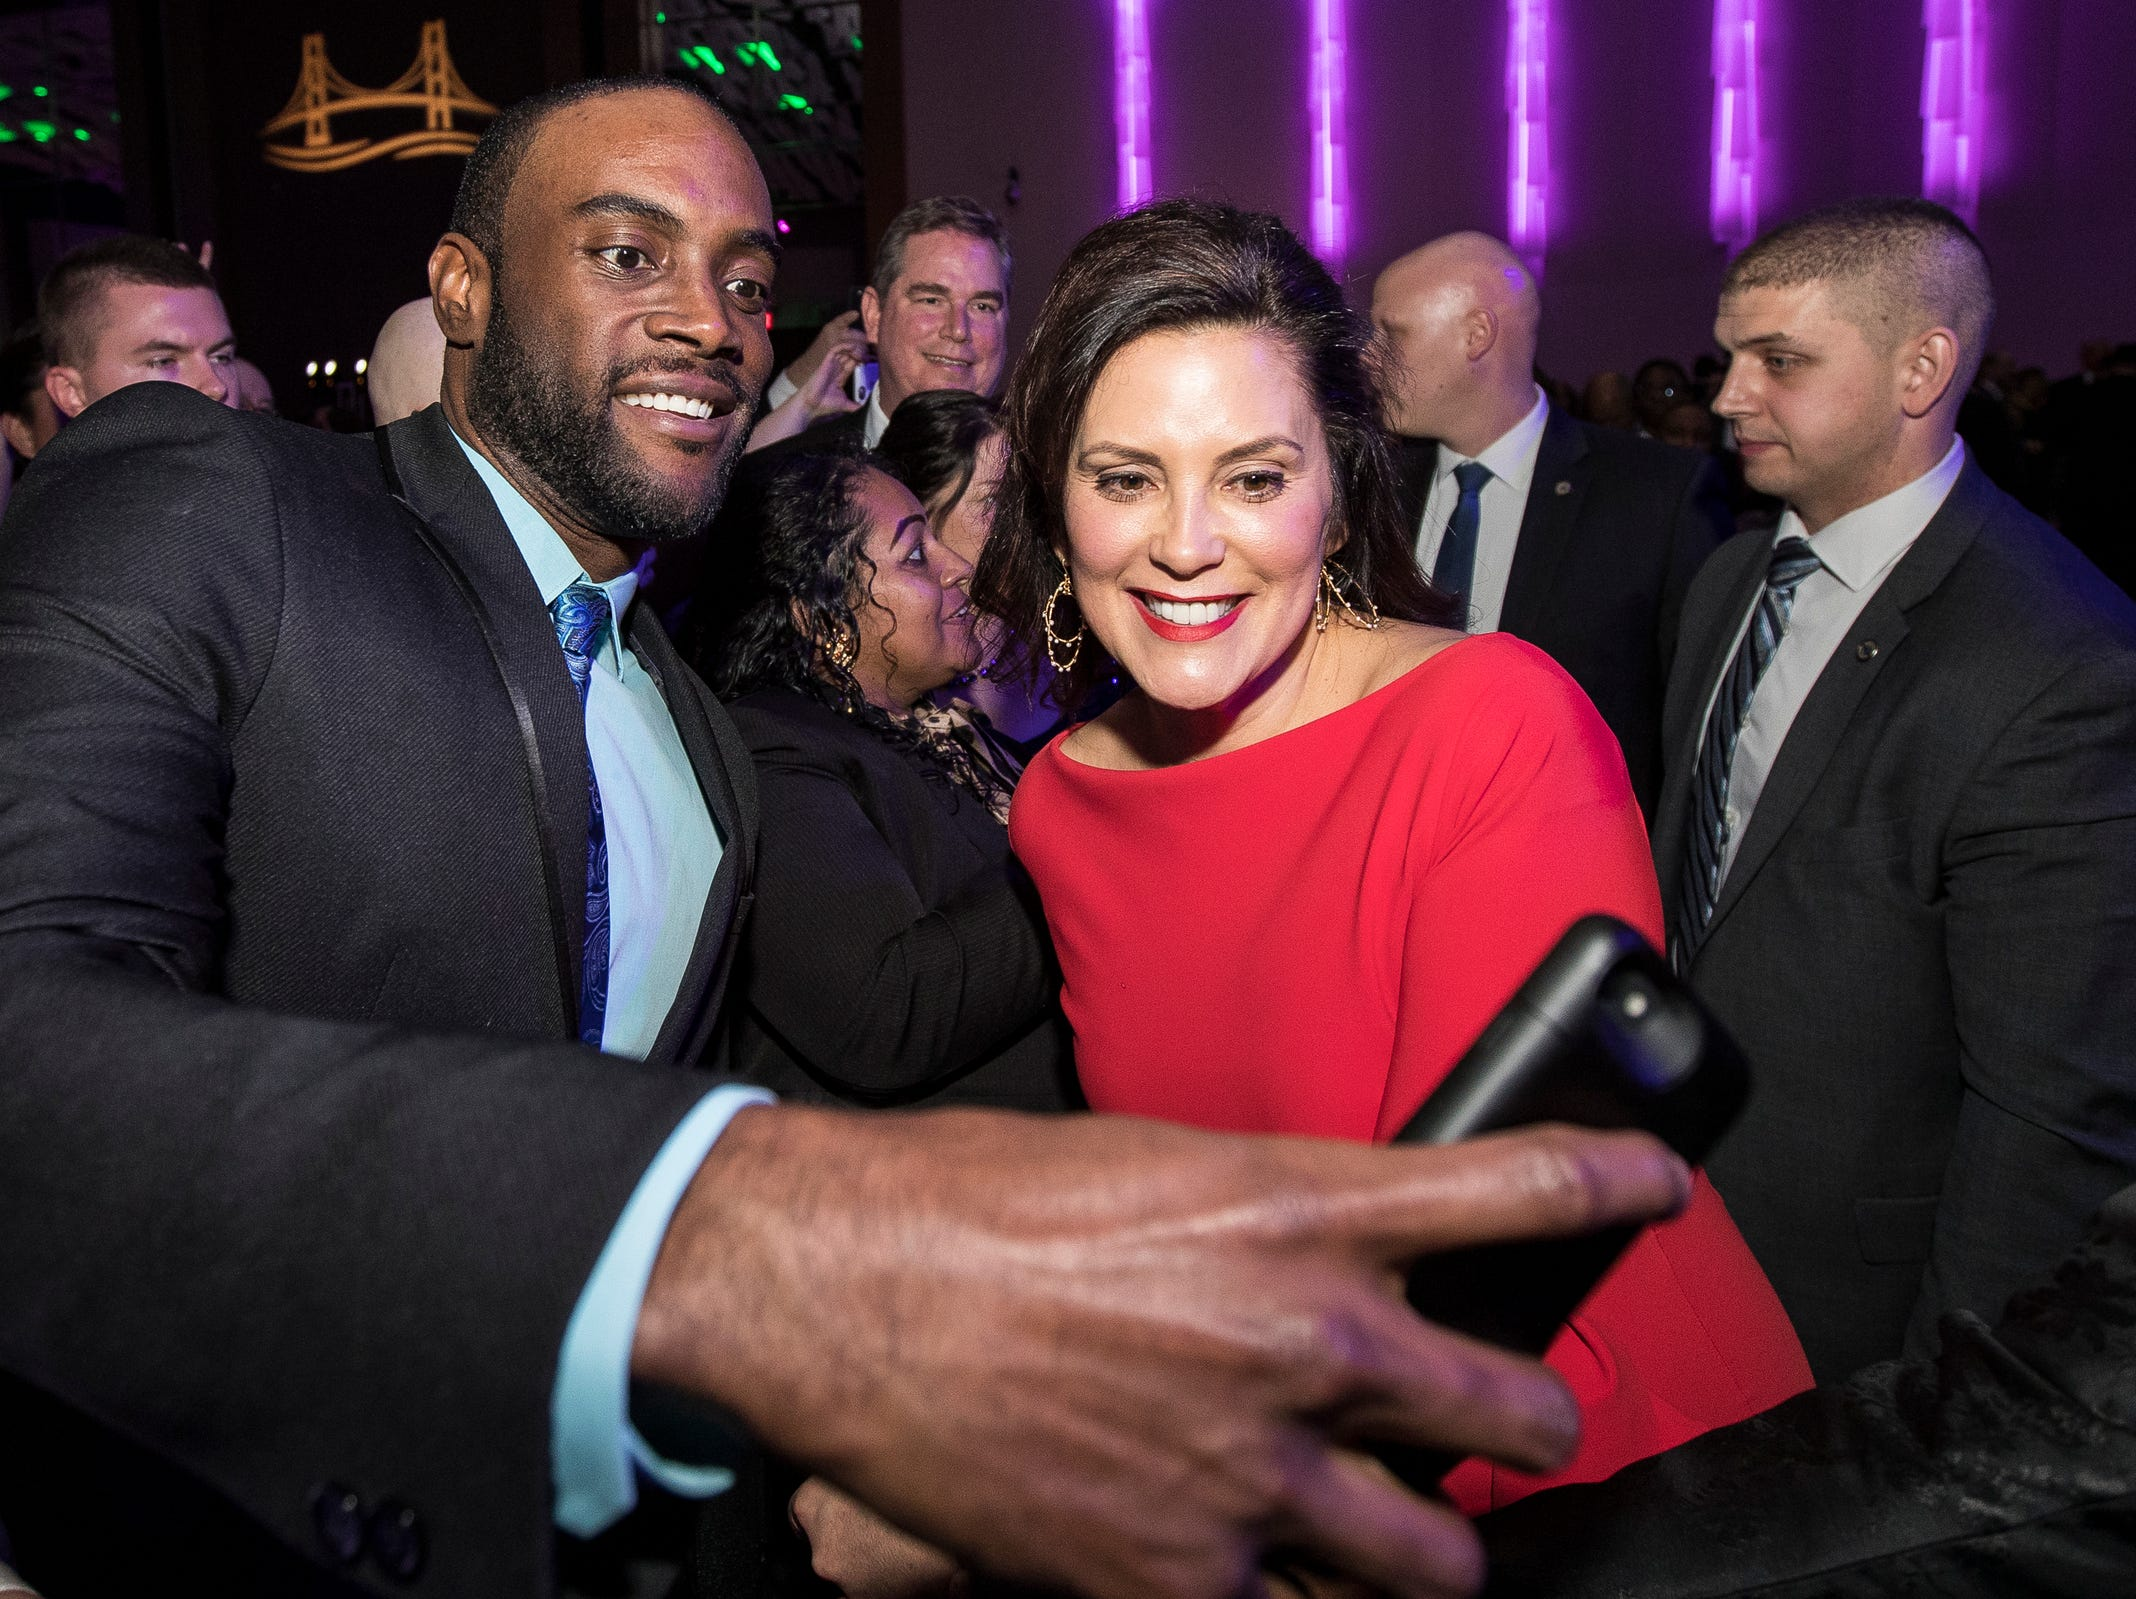 Detroit attorney Maurice Davis talks a selfie with Governor Gretchen Whitmer during the inaugural ball at Cobo Center in Detroit on Tuesday, Jan. 1, 2019.